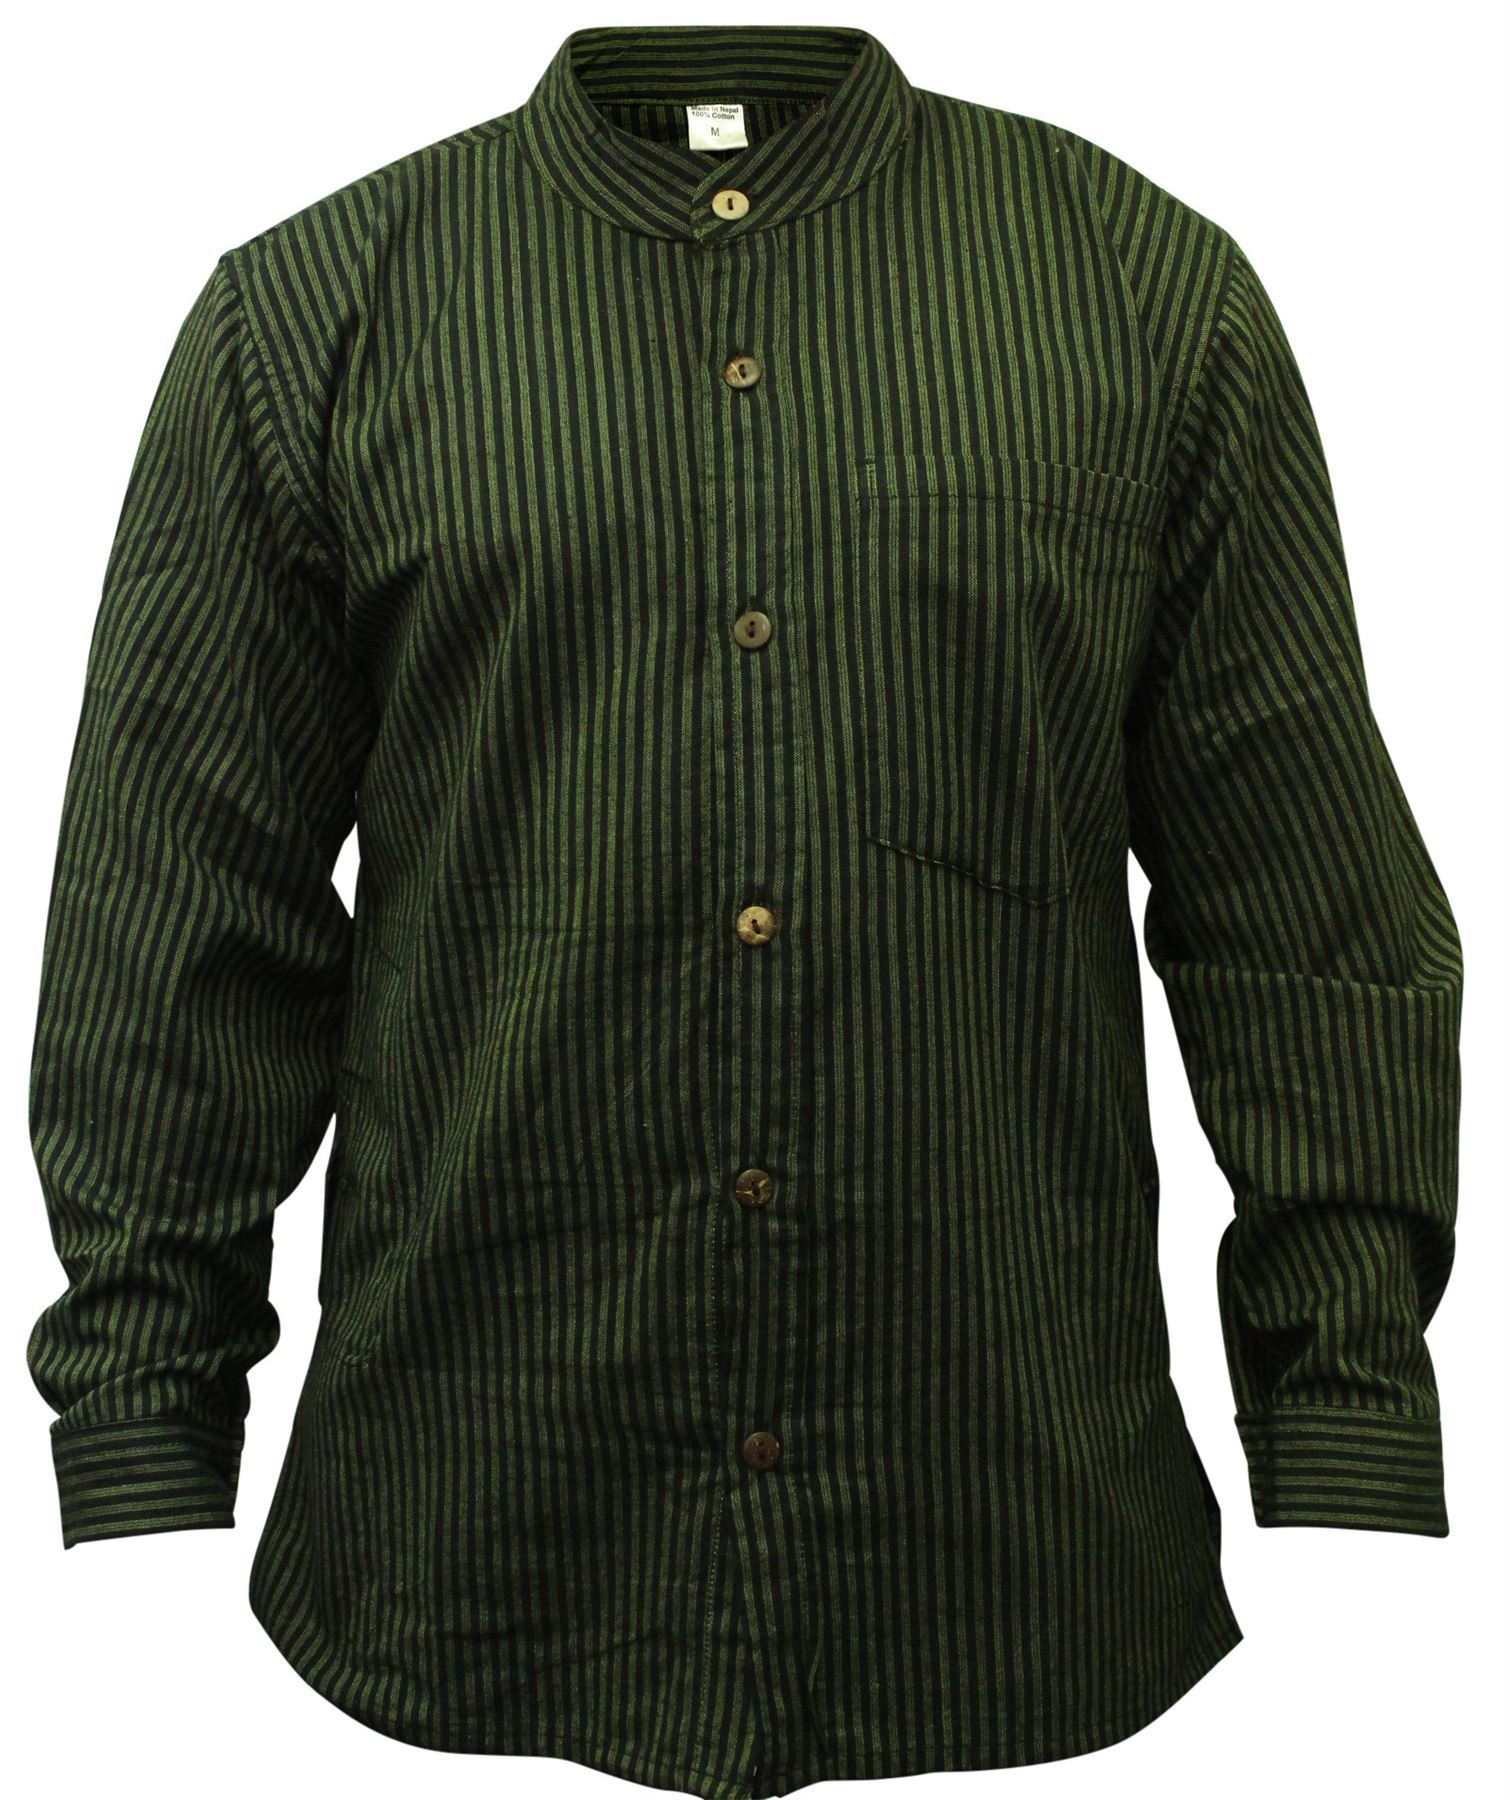 Irish Collarless Grandad Shirts Genuine traditional Irish collarless grandad shirts, some by Lee Valley from Cork and some by Magees of Donegal. Beautifully comfortable any time of year, these Grandad collar shirts are a casual, relaxed fit.